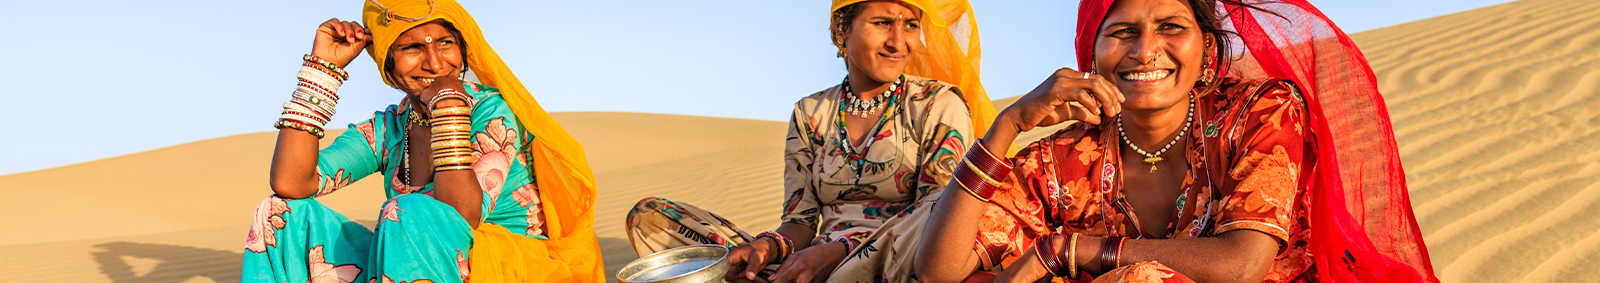 women sitting at the sandy desert